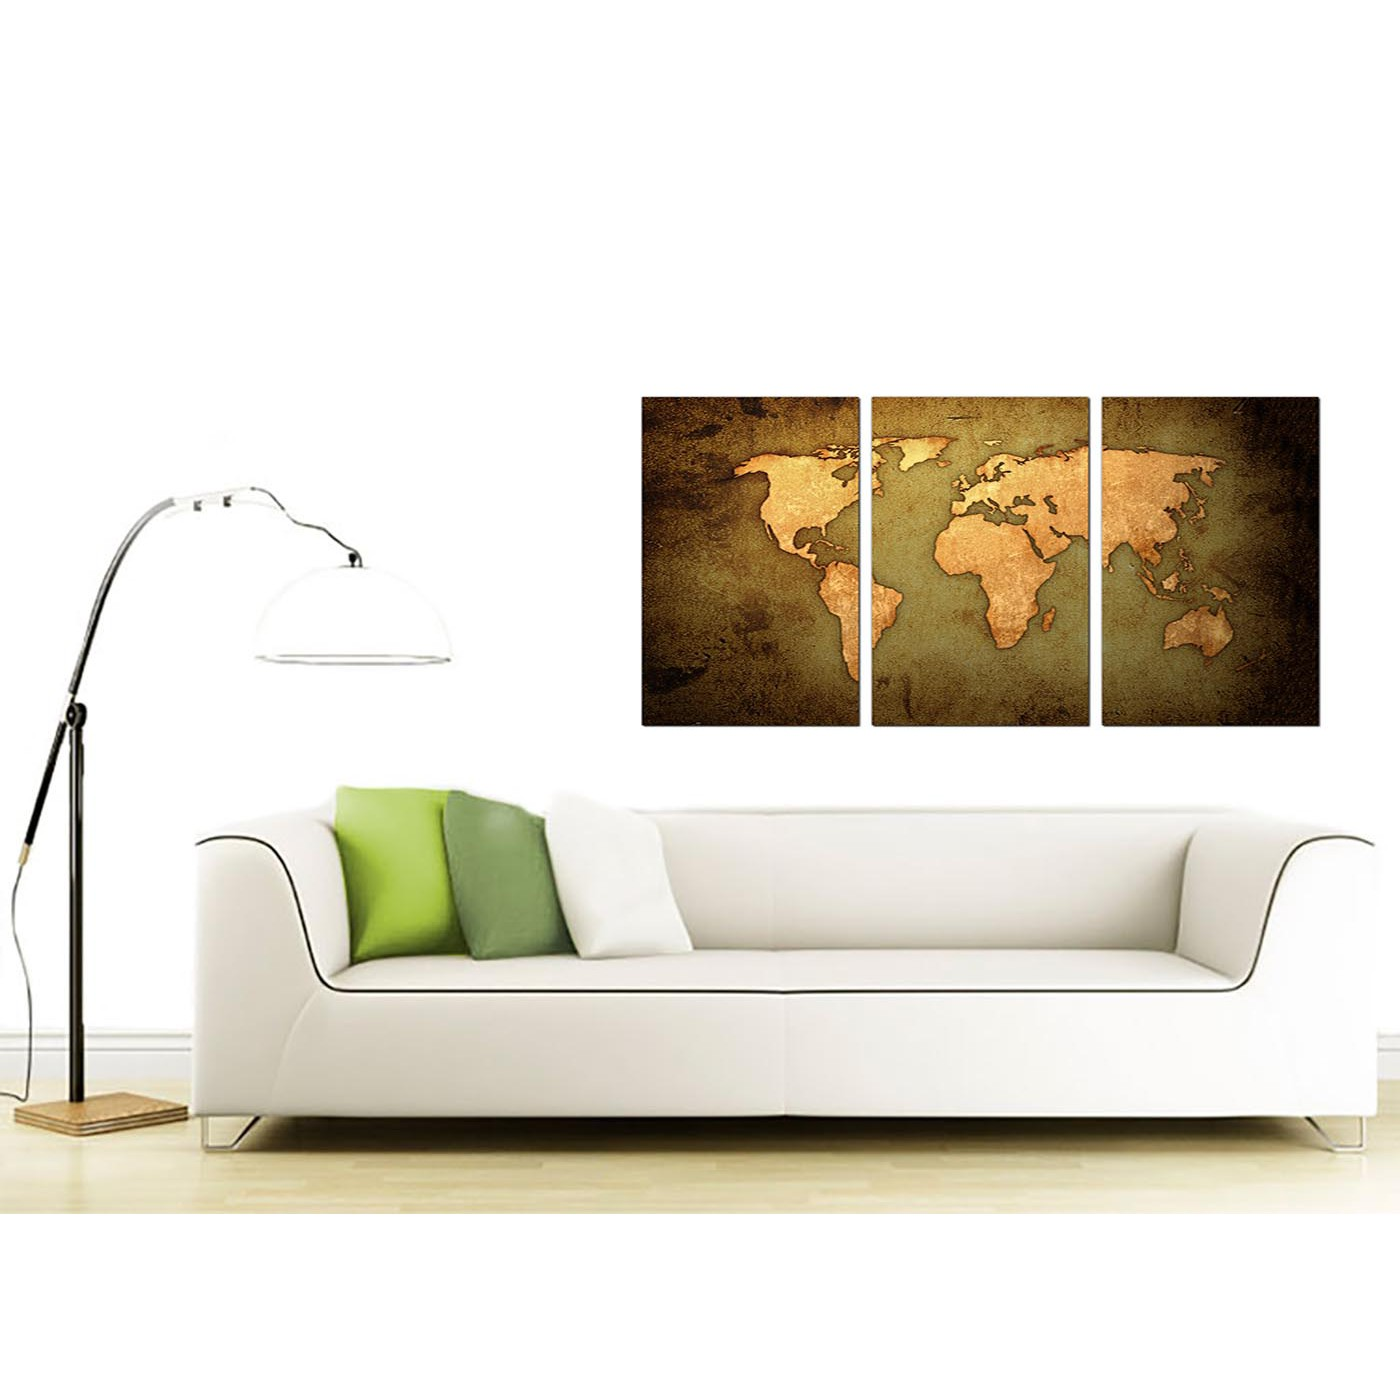 Vintage world map canvas art set of three for your study display gallery item 4 3 panel map canvas prints uk 125cm x 60cm 3189 display gallery item 5 3 panel canvas wall art world gumiabroncs Gallery